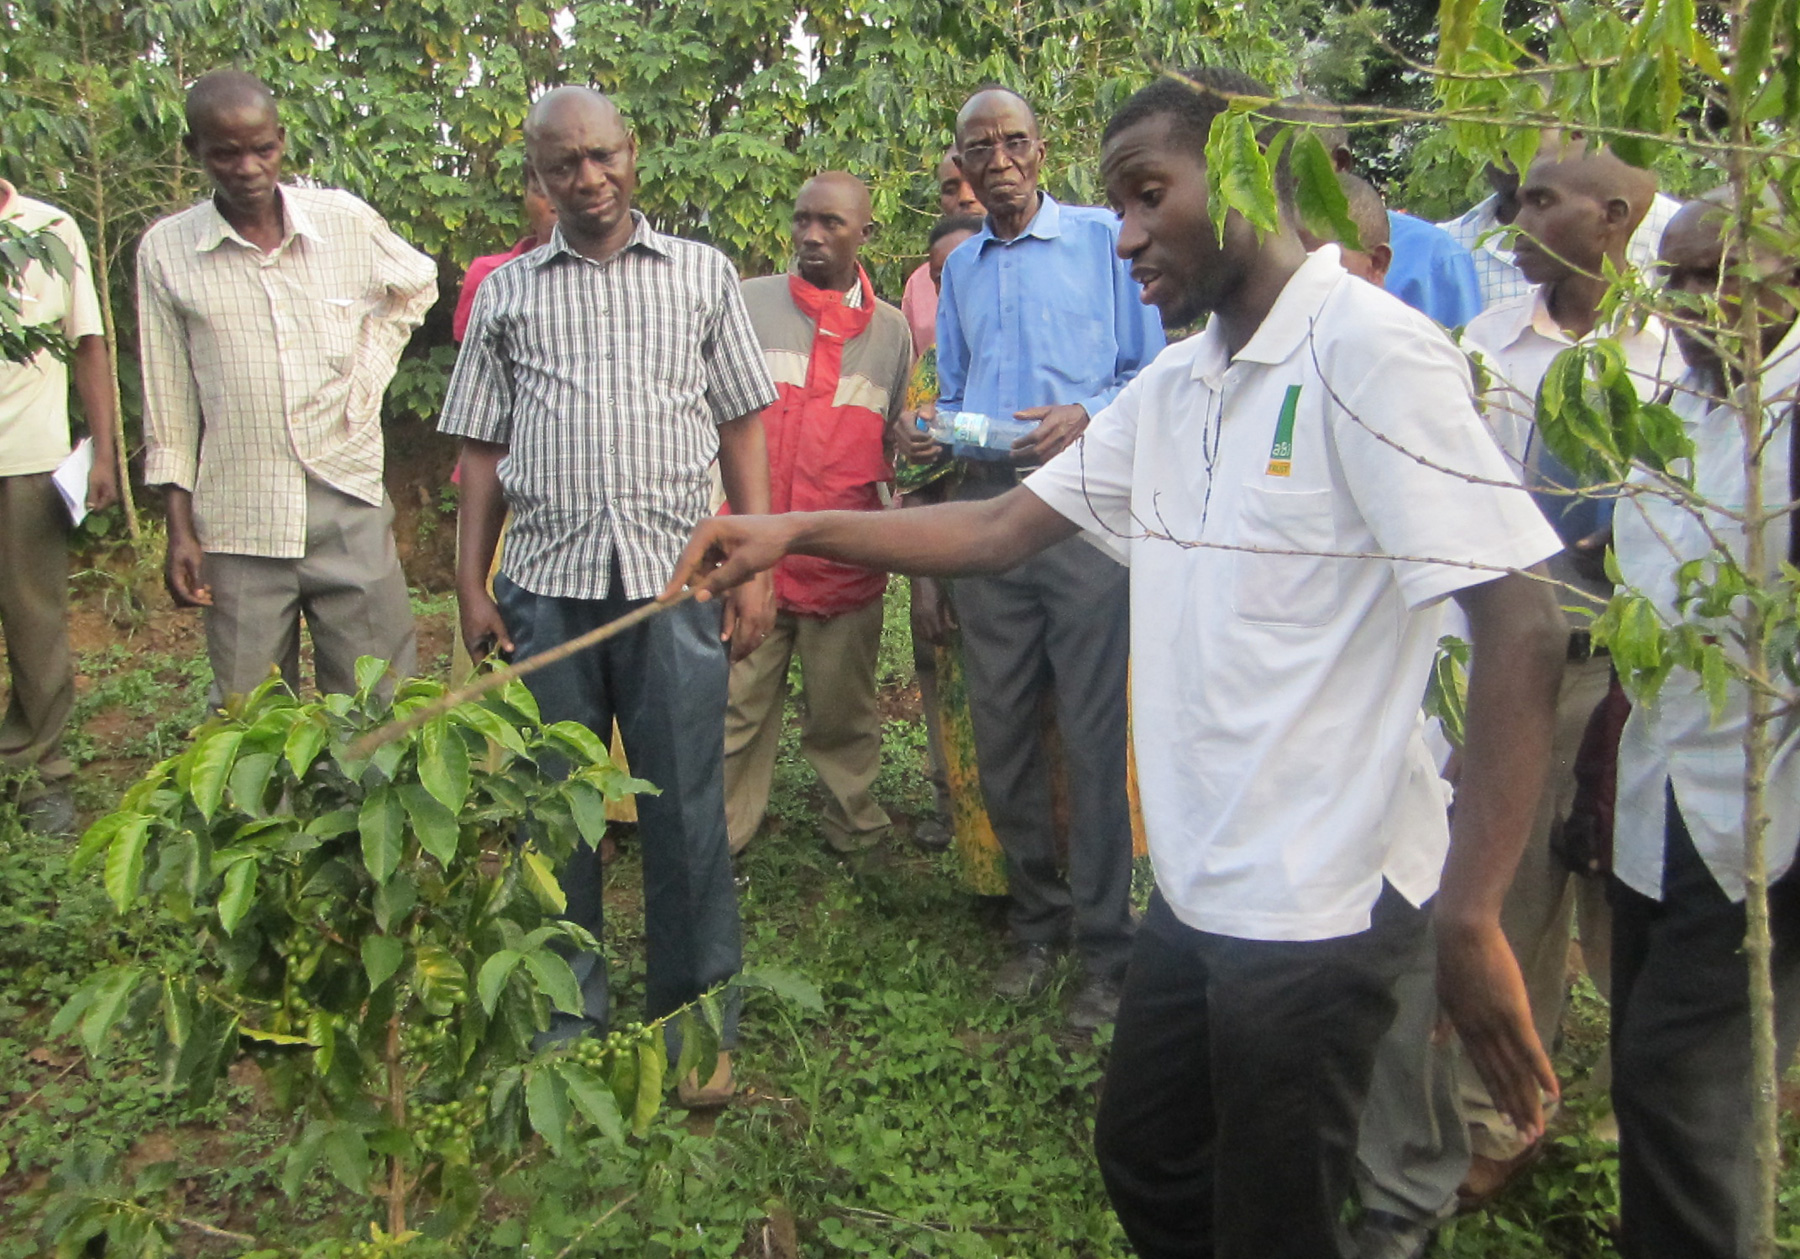 Gorilla Conservation Coffee plantation tour with the coffee growers, Bwindi